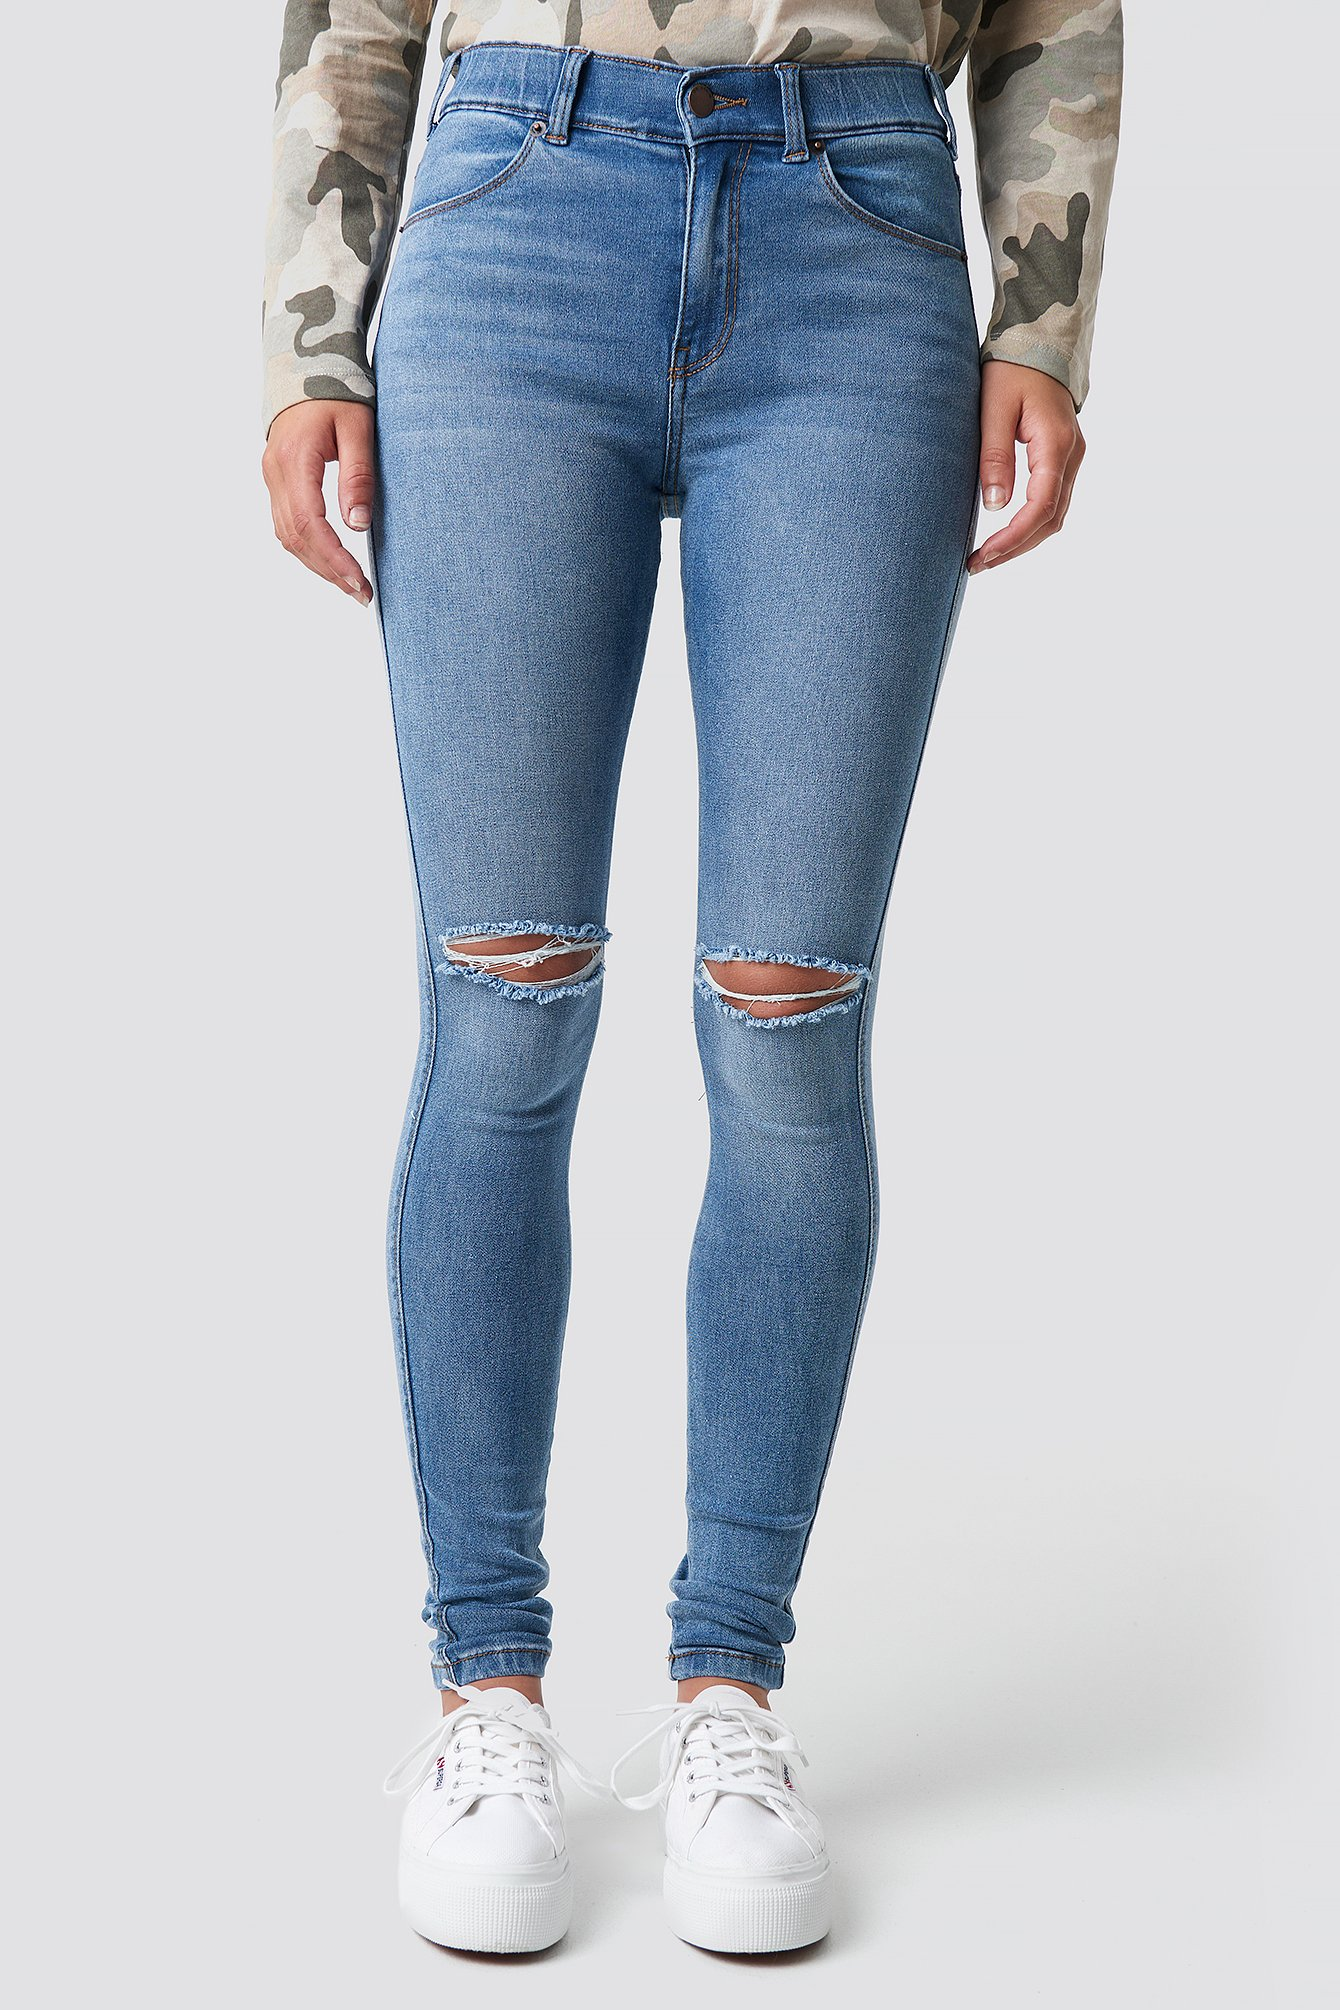 Na Lexy Light Destroyed Jeans Stone aq00WcAwIT